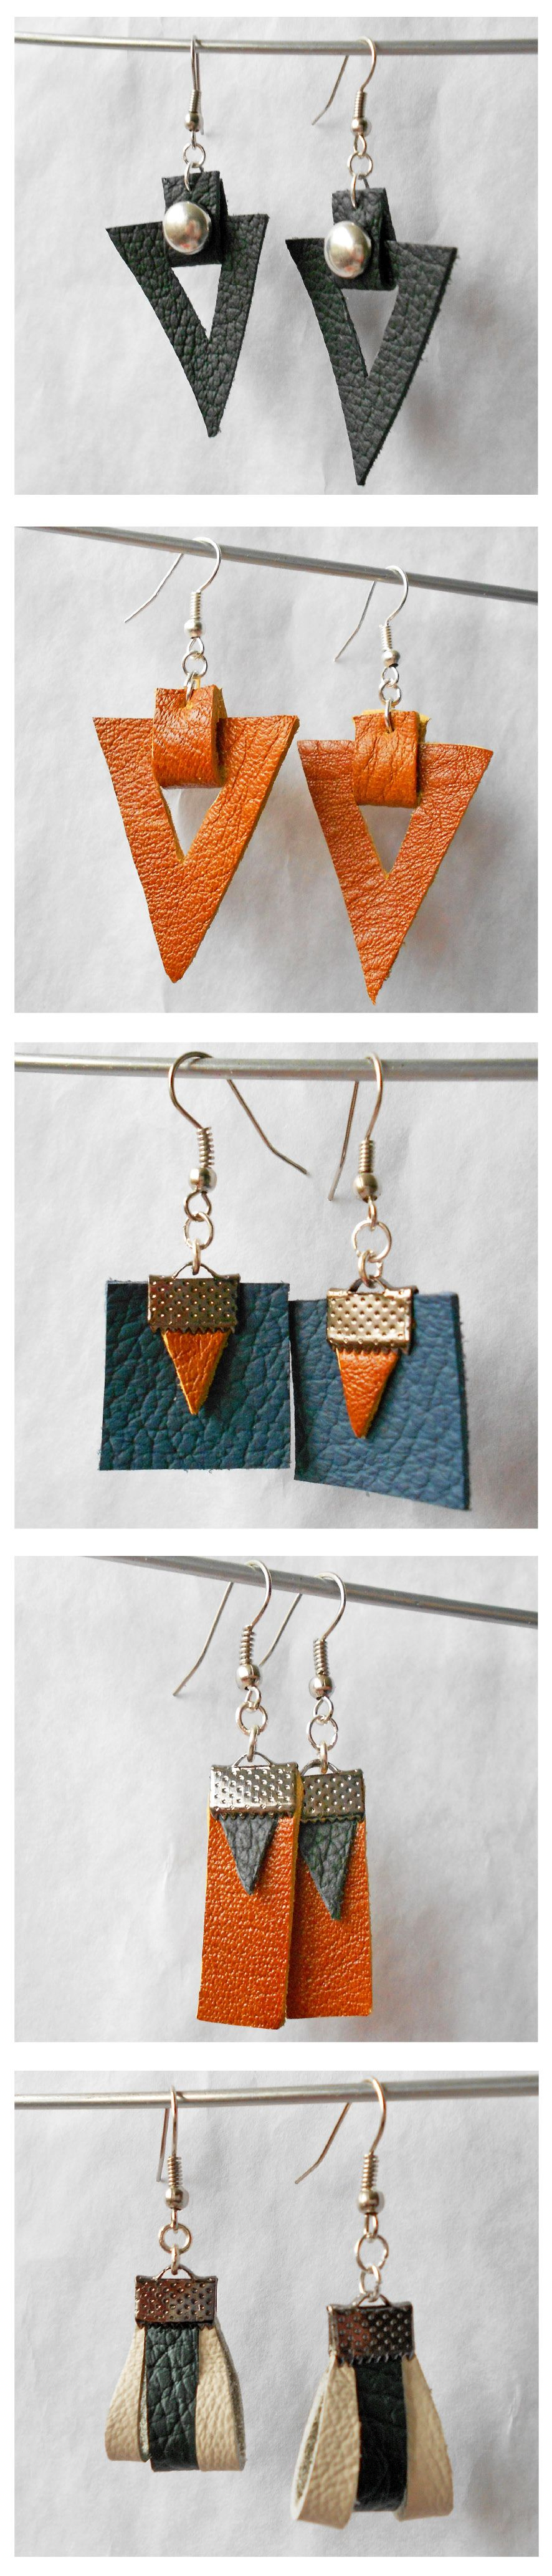 ROCK GEOMETRY COLLECTION_Leather earrings - by fralliDEA